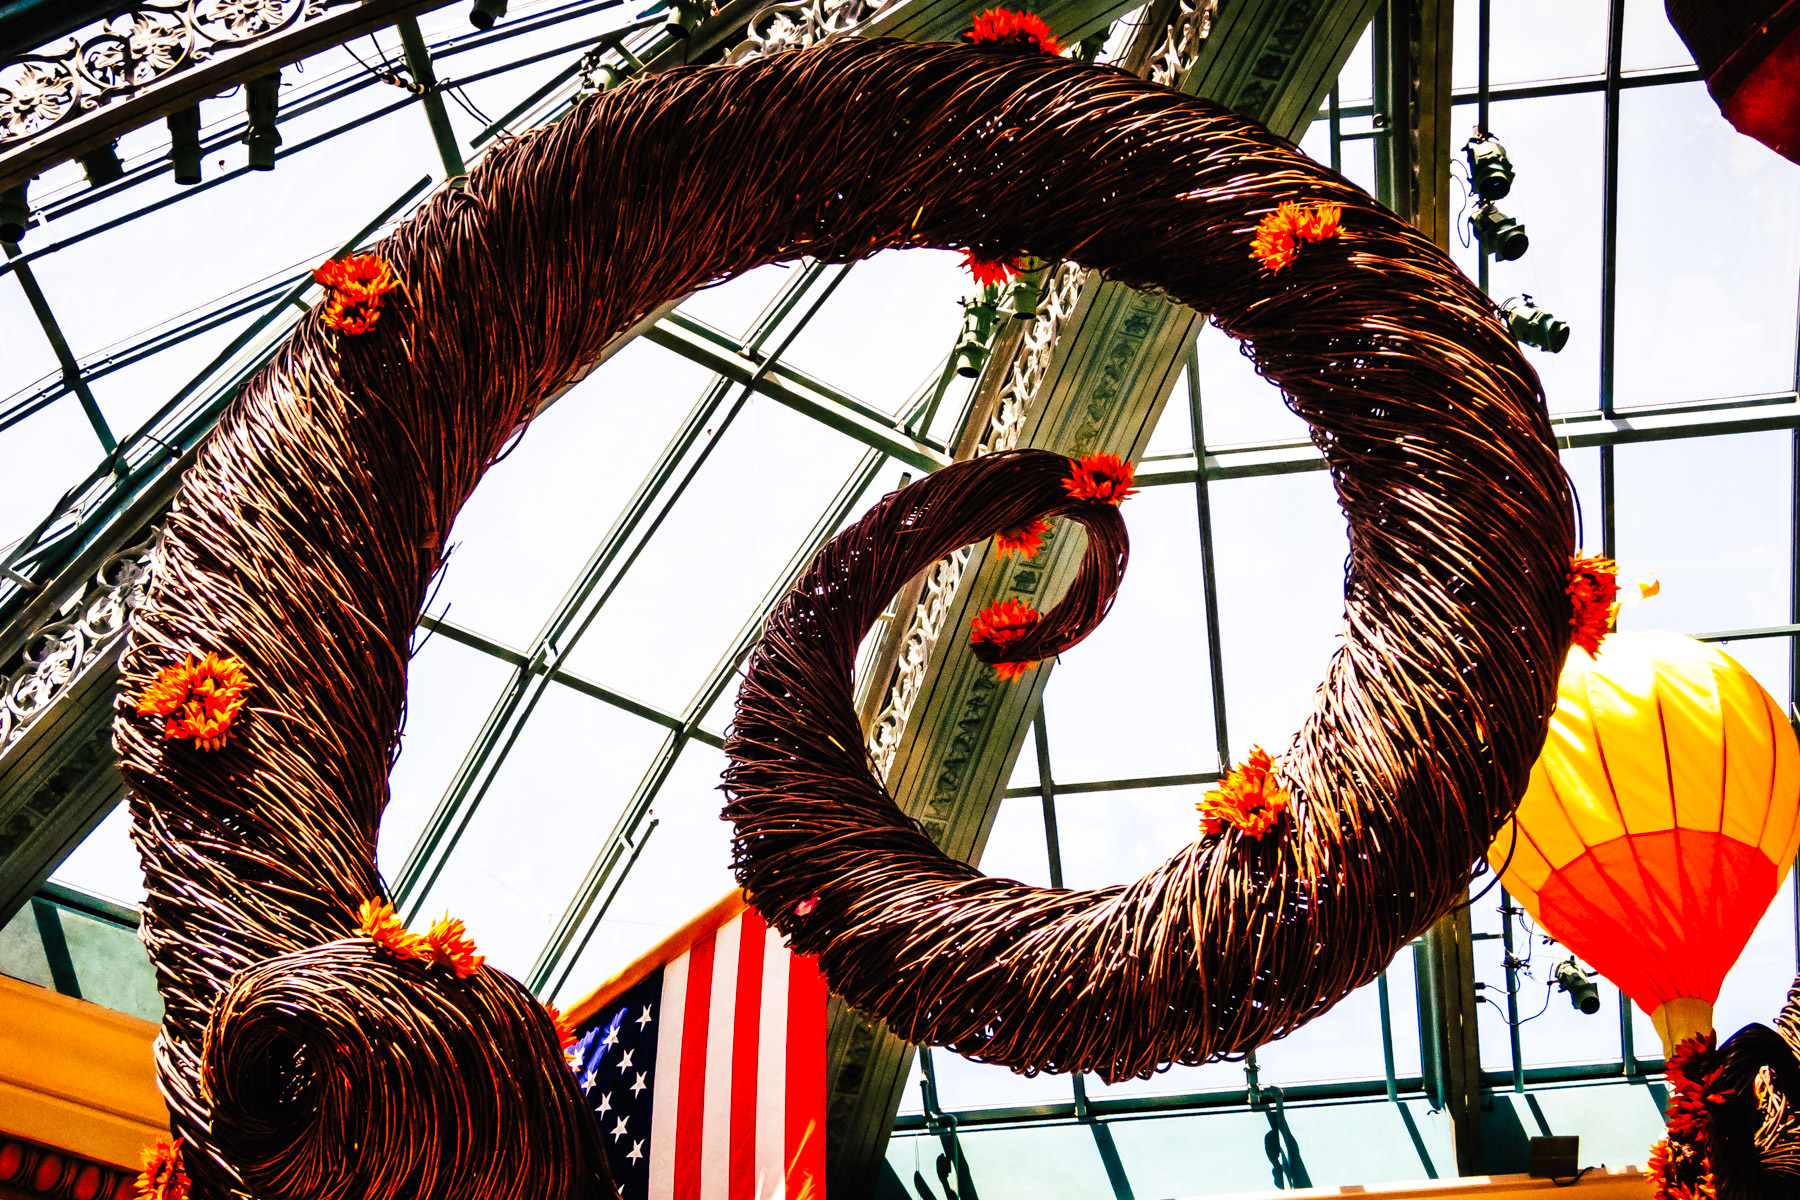 A large wicker decoration in the conservatory at the Bellagio, Las Vegas.